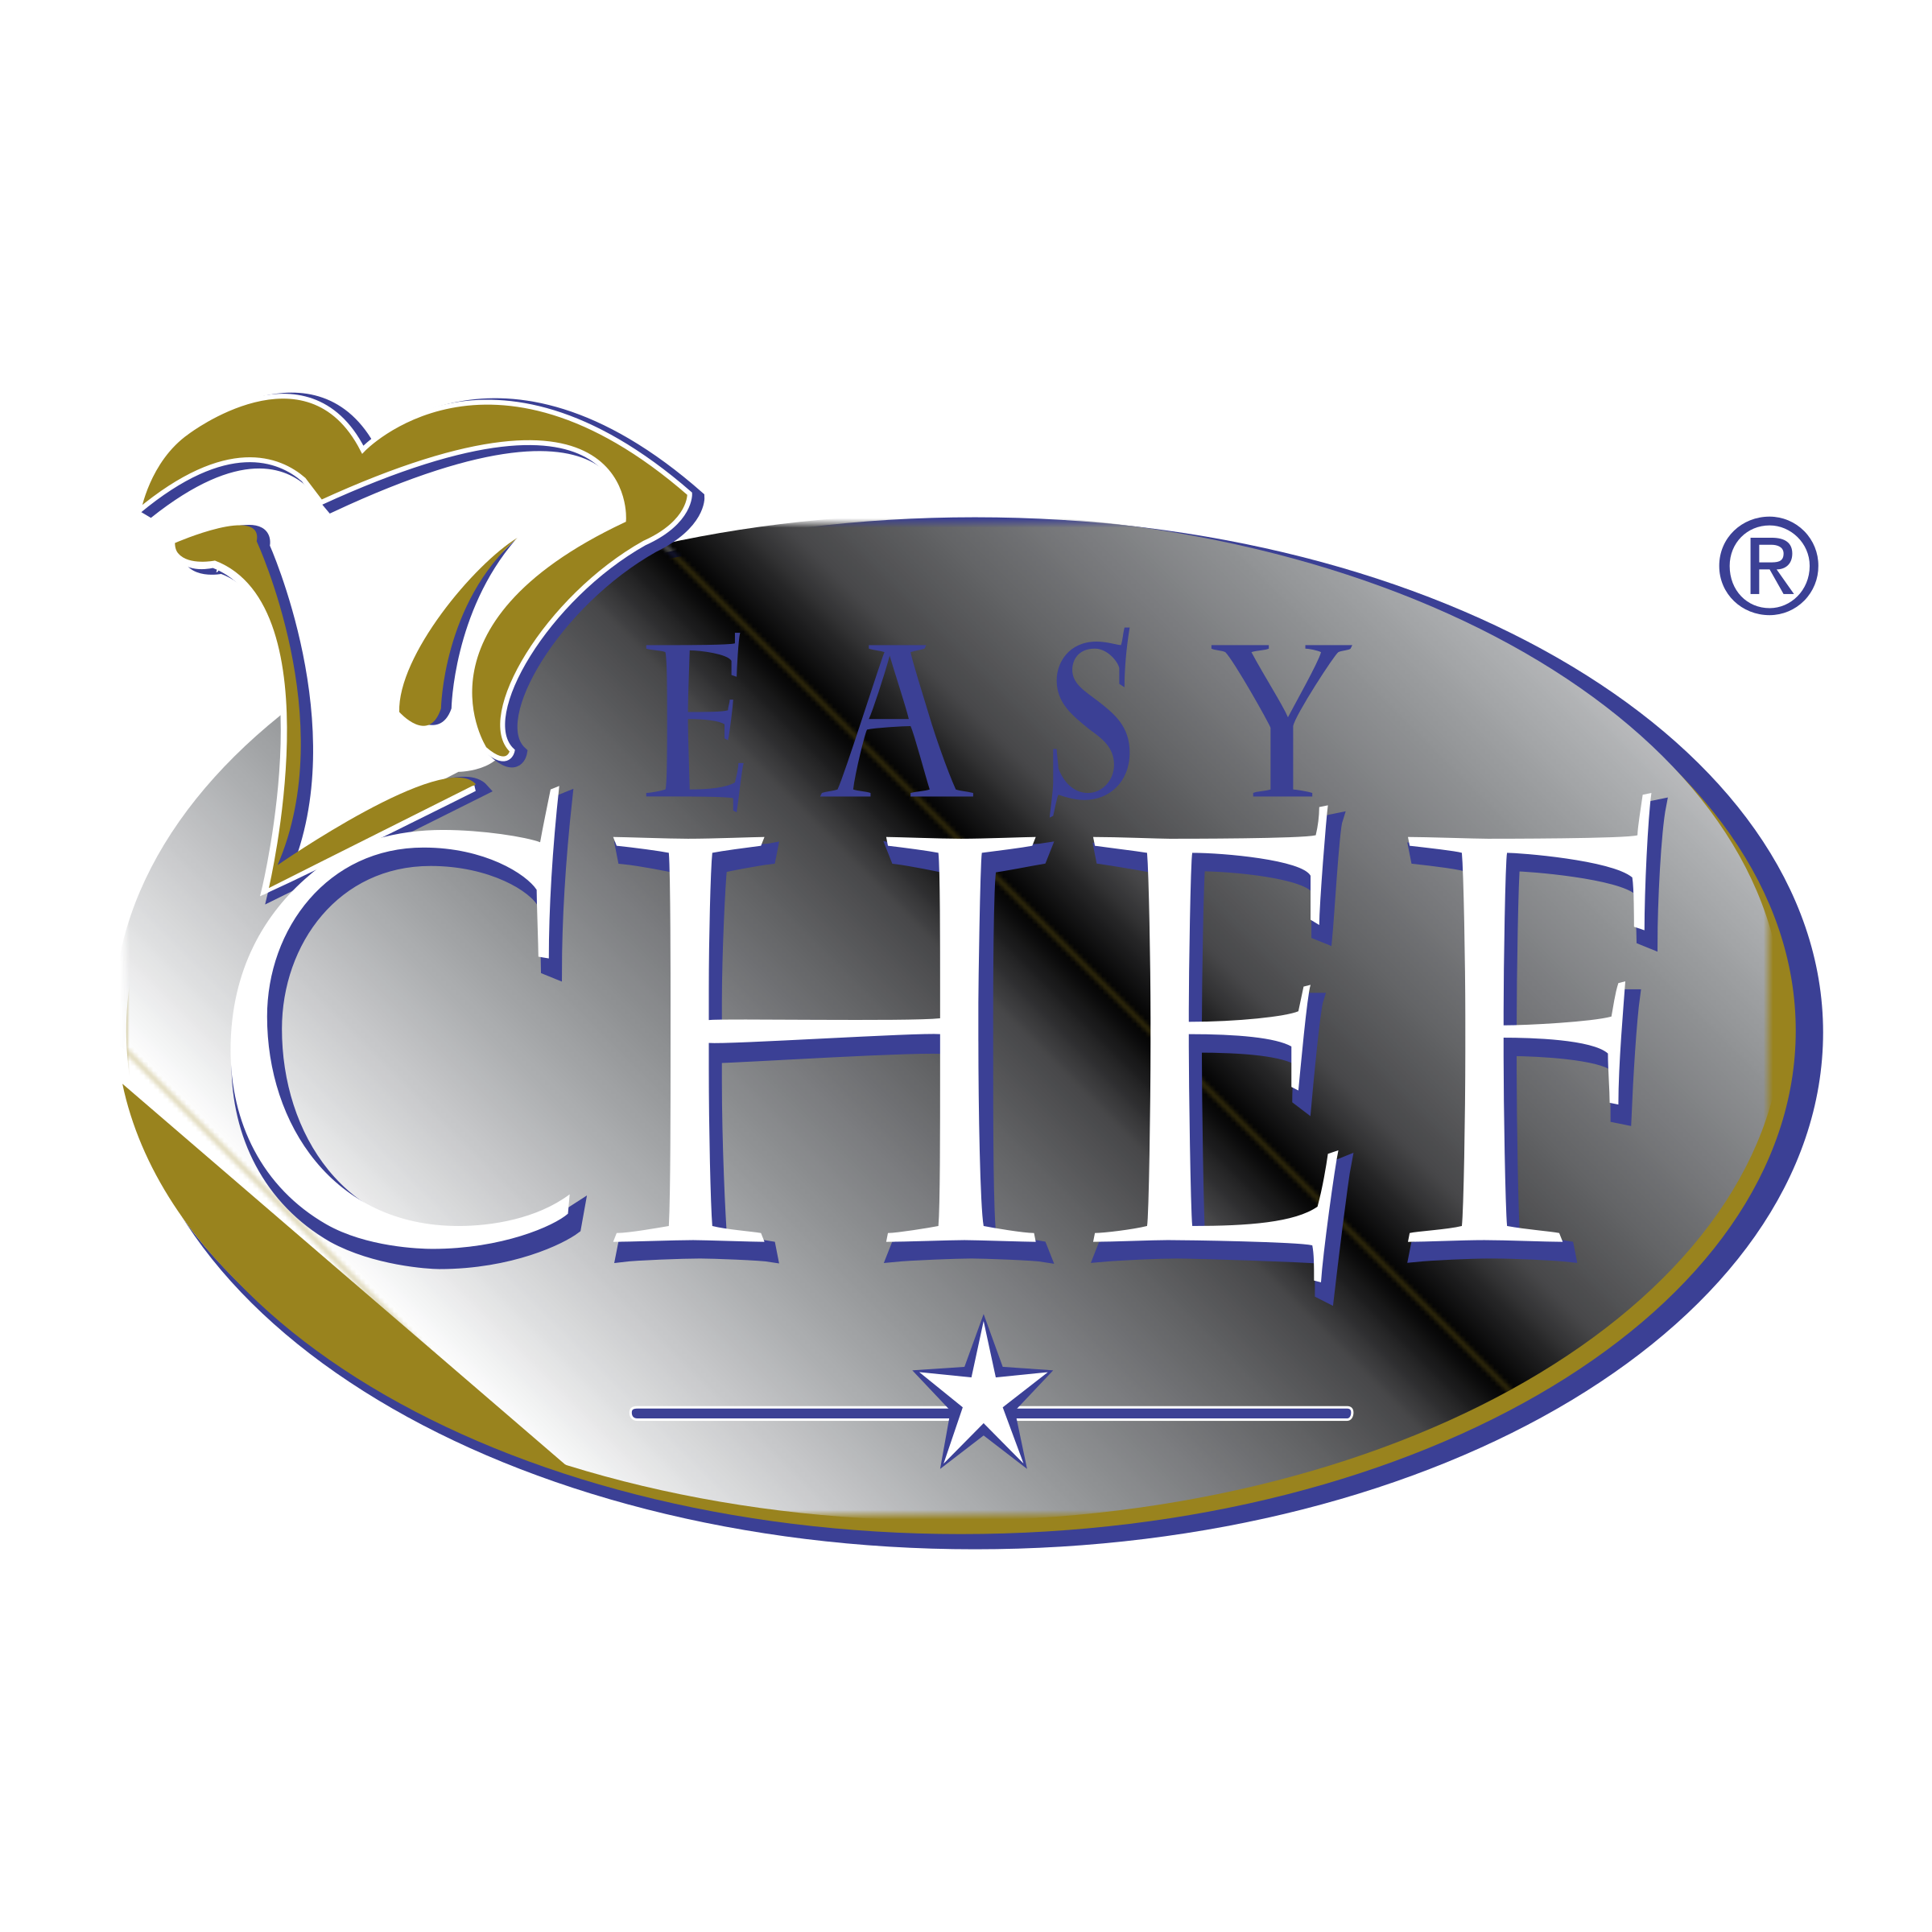 Easy vector electric. Chef logo png transparent